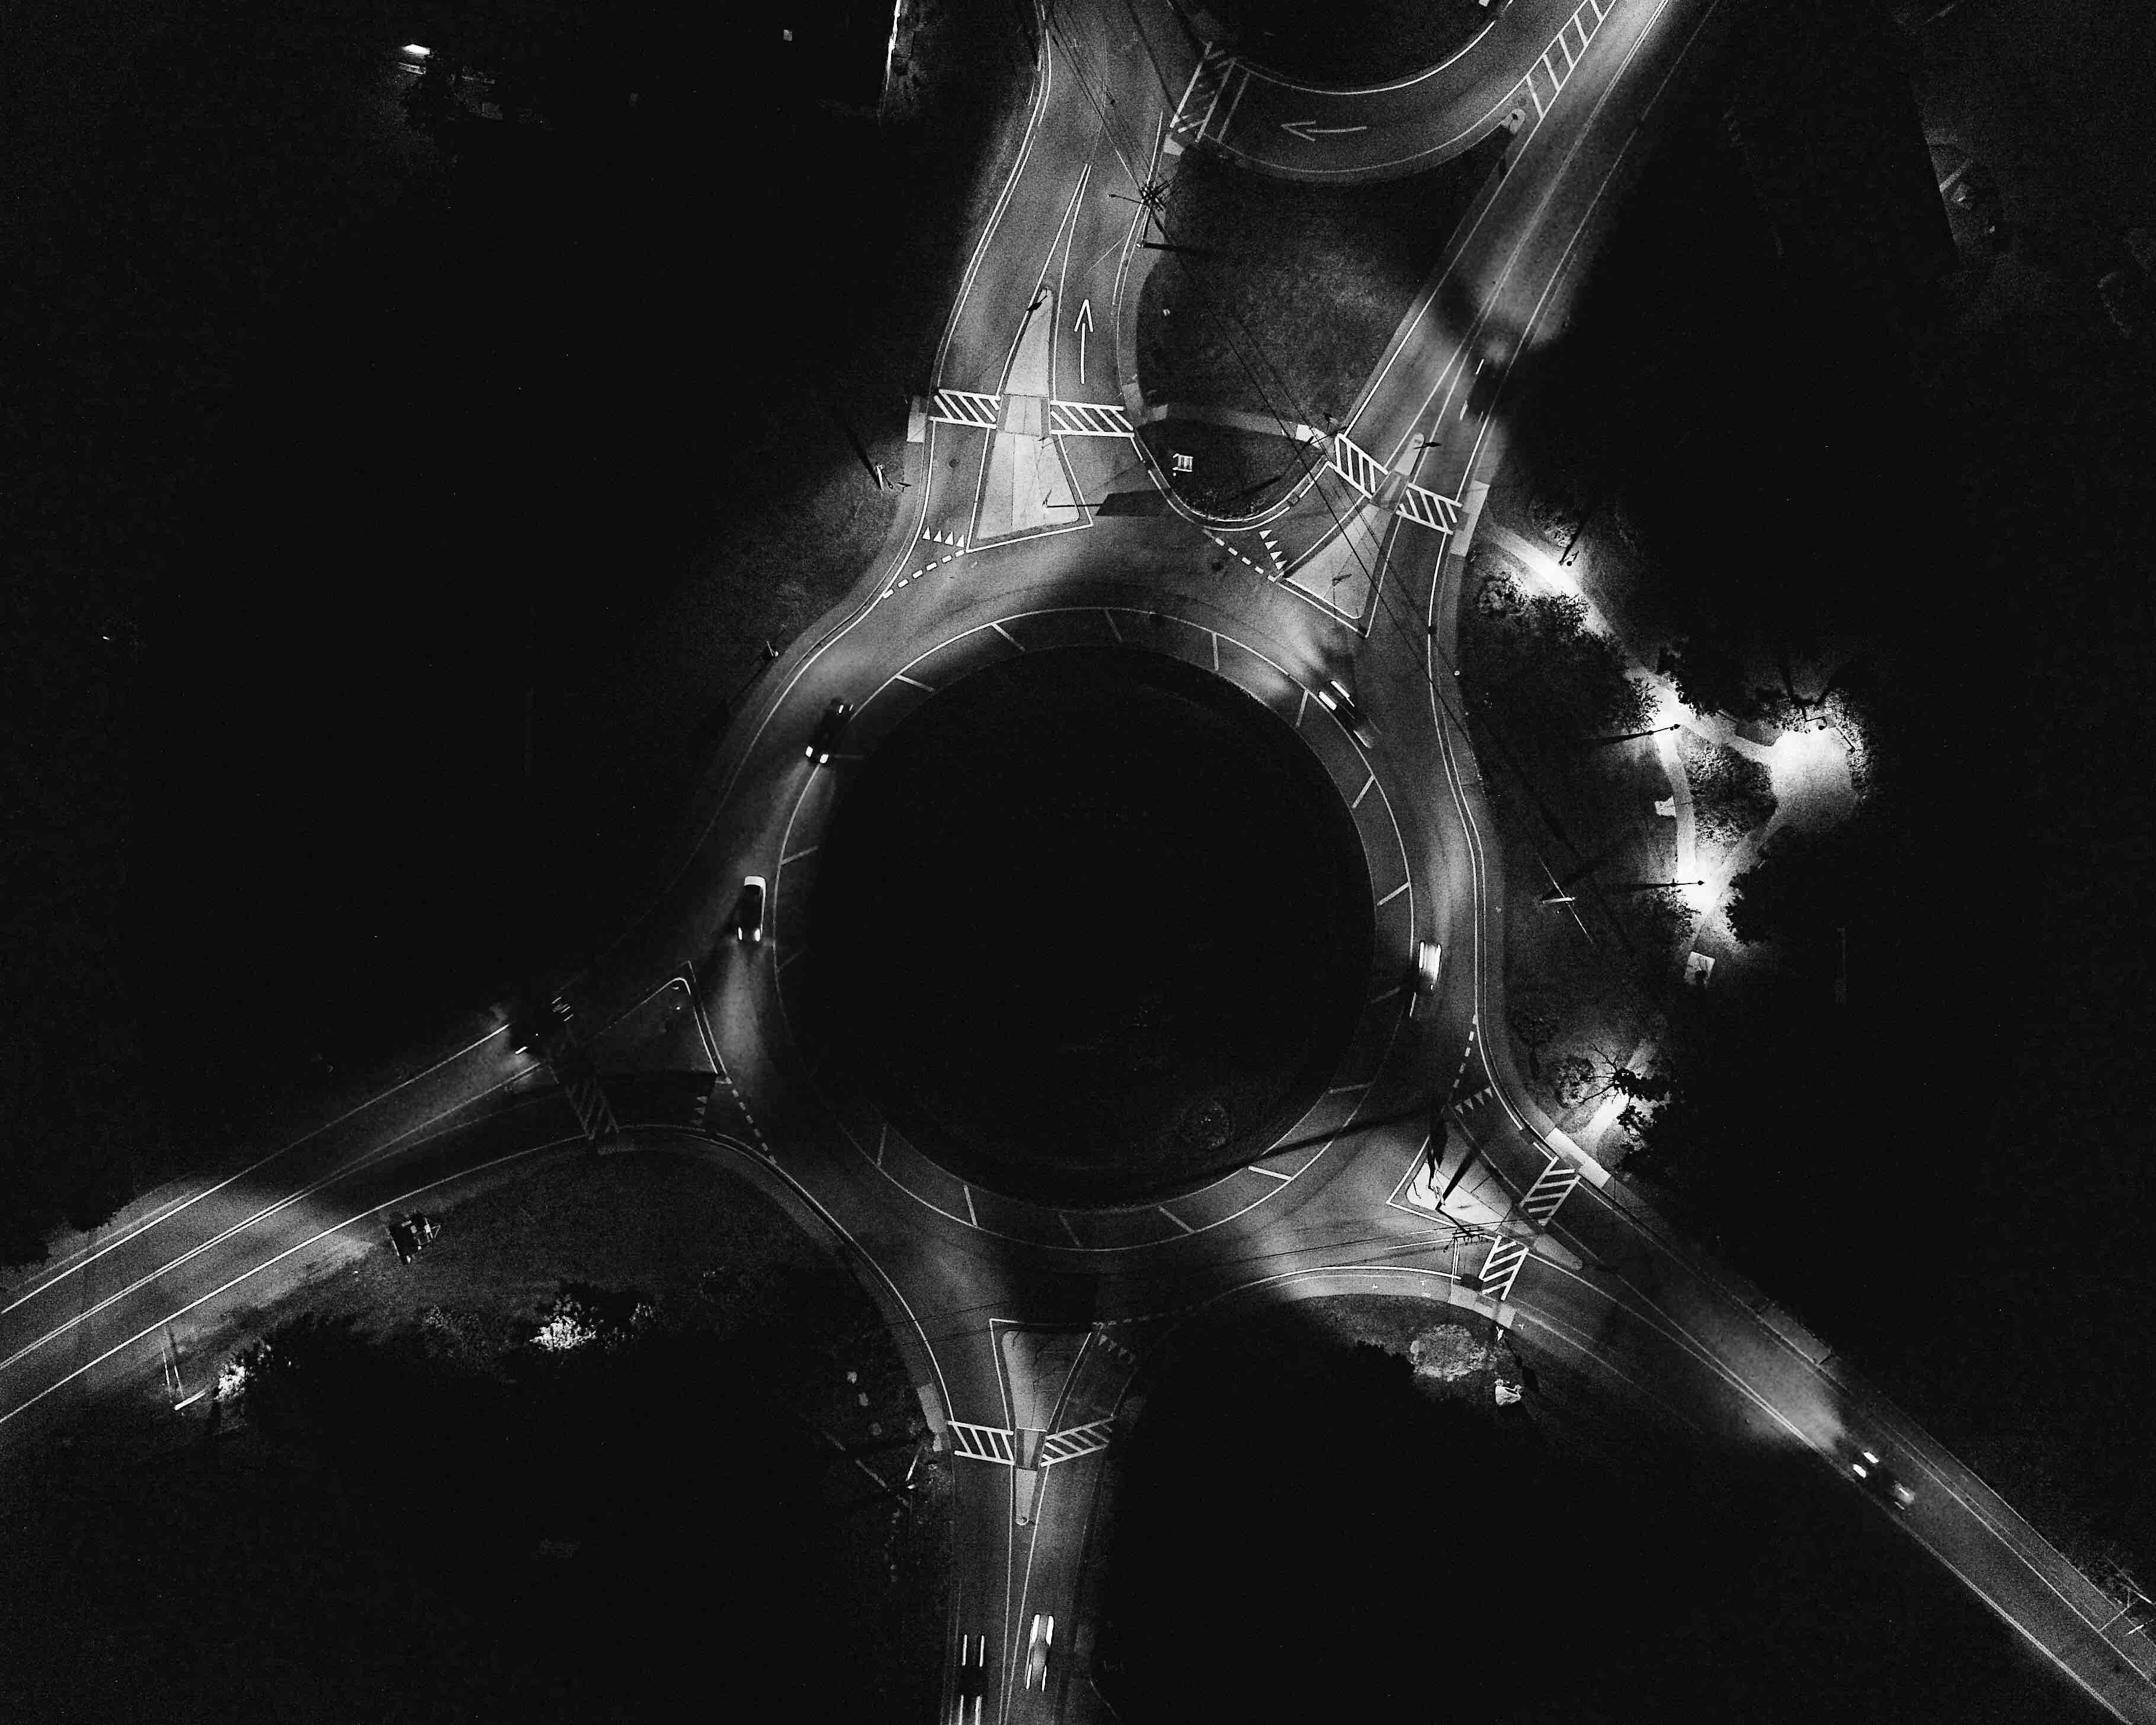 A dim drone shot of a traffic circle illuminated by streetlights